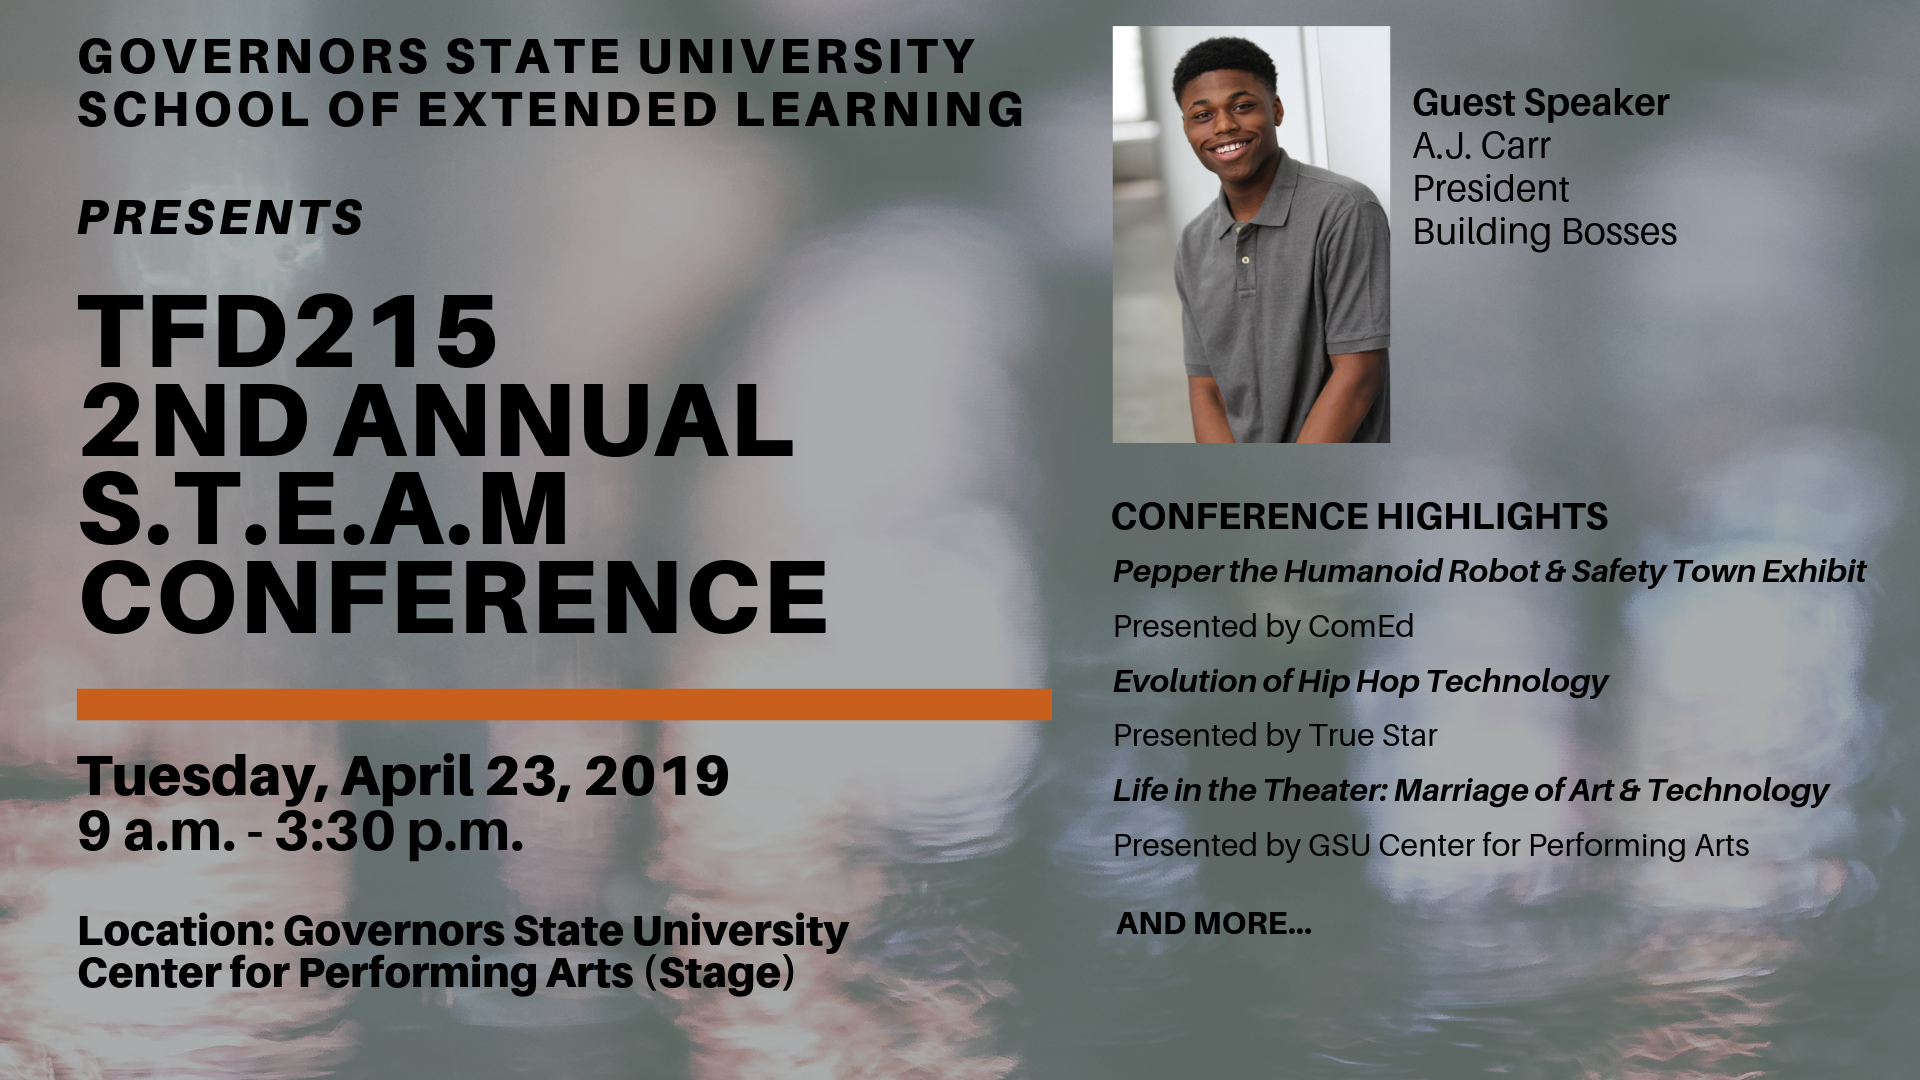 Welcome to Governors State University in Chicago's Southland